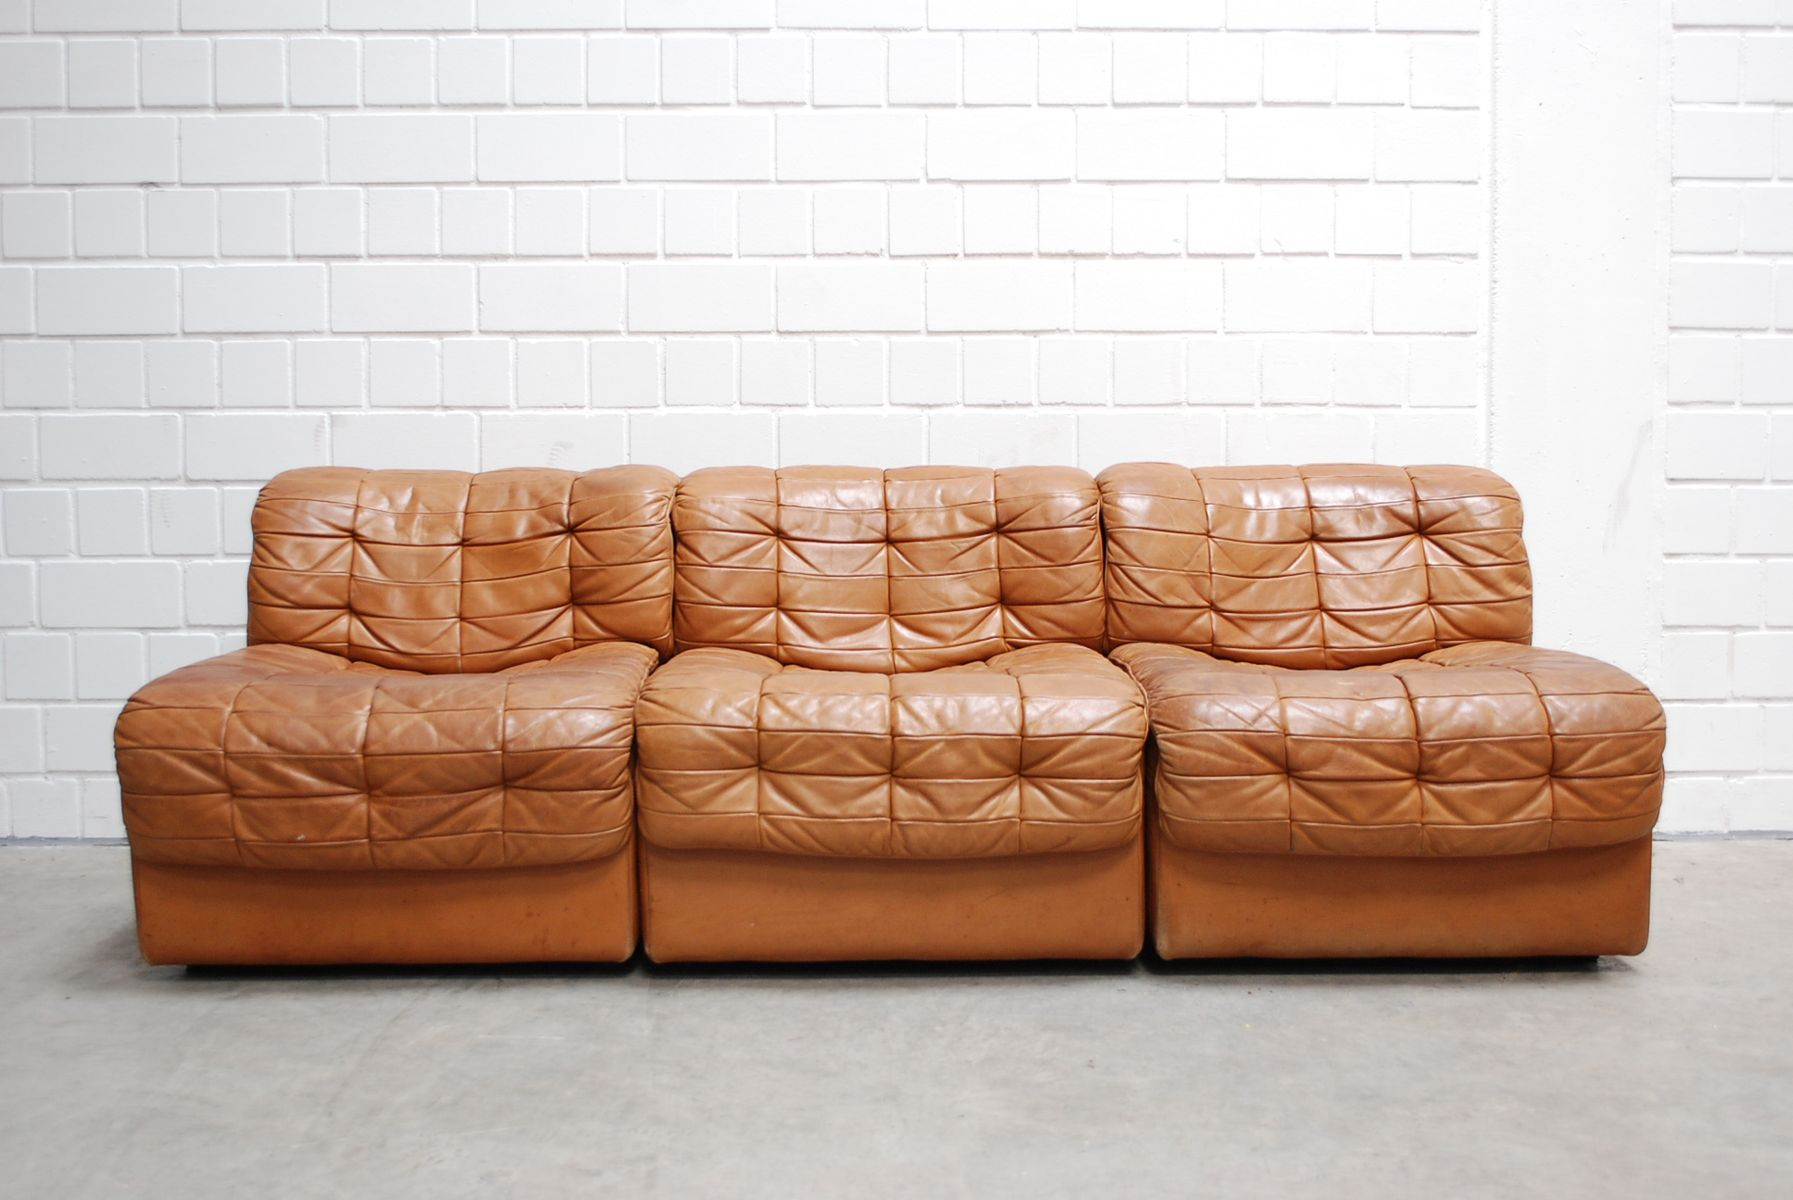 swiss modular ds 11 cognac leather sofa from de sede 1985. Black Bedroom Furniture Sets. Home Design Ideas